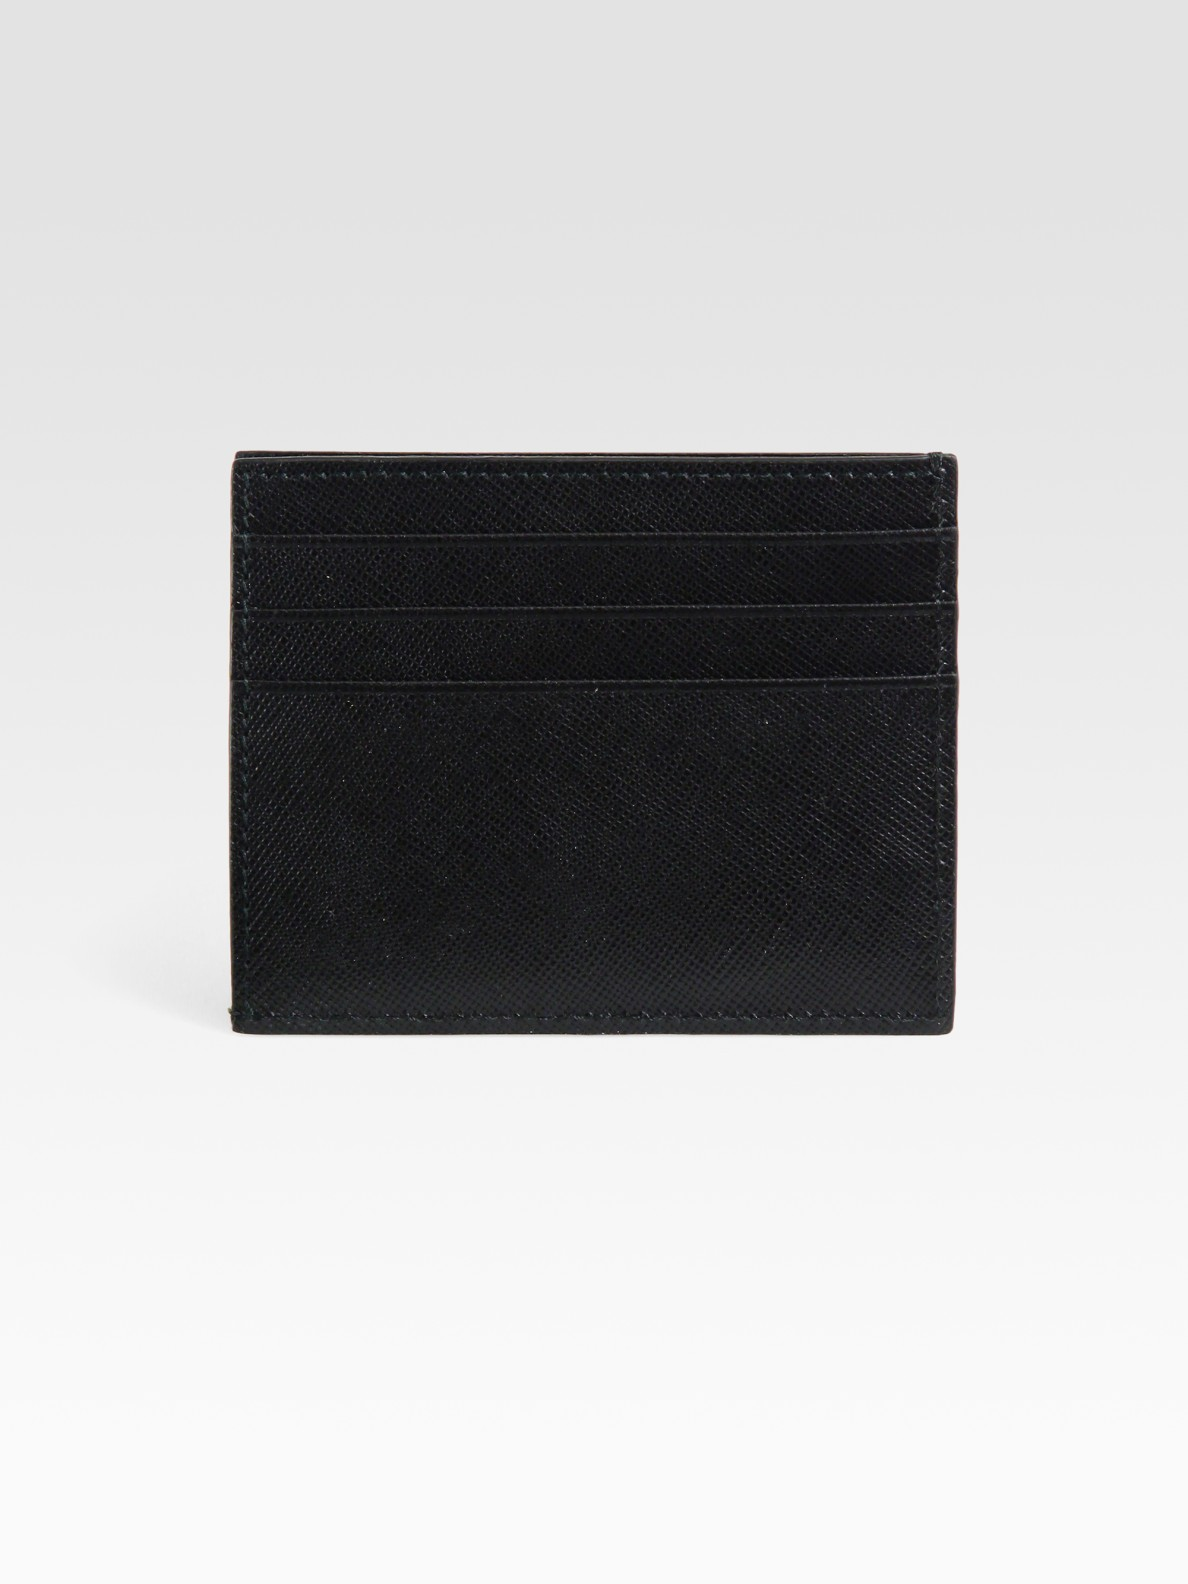 prada handbag replicas - Prada Saffiano Leather Credit Card Case in Black for Men | Lyst